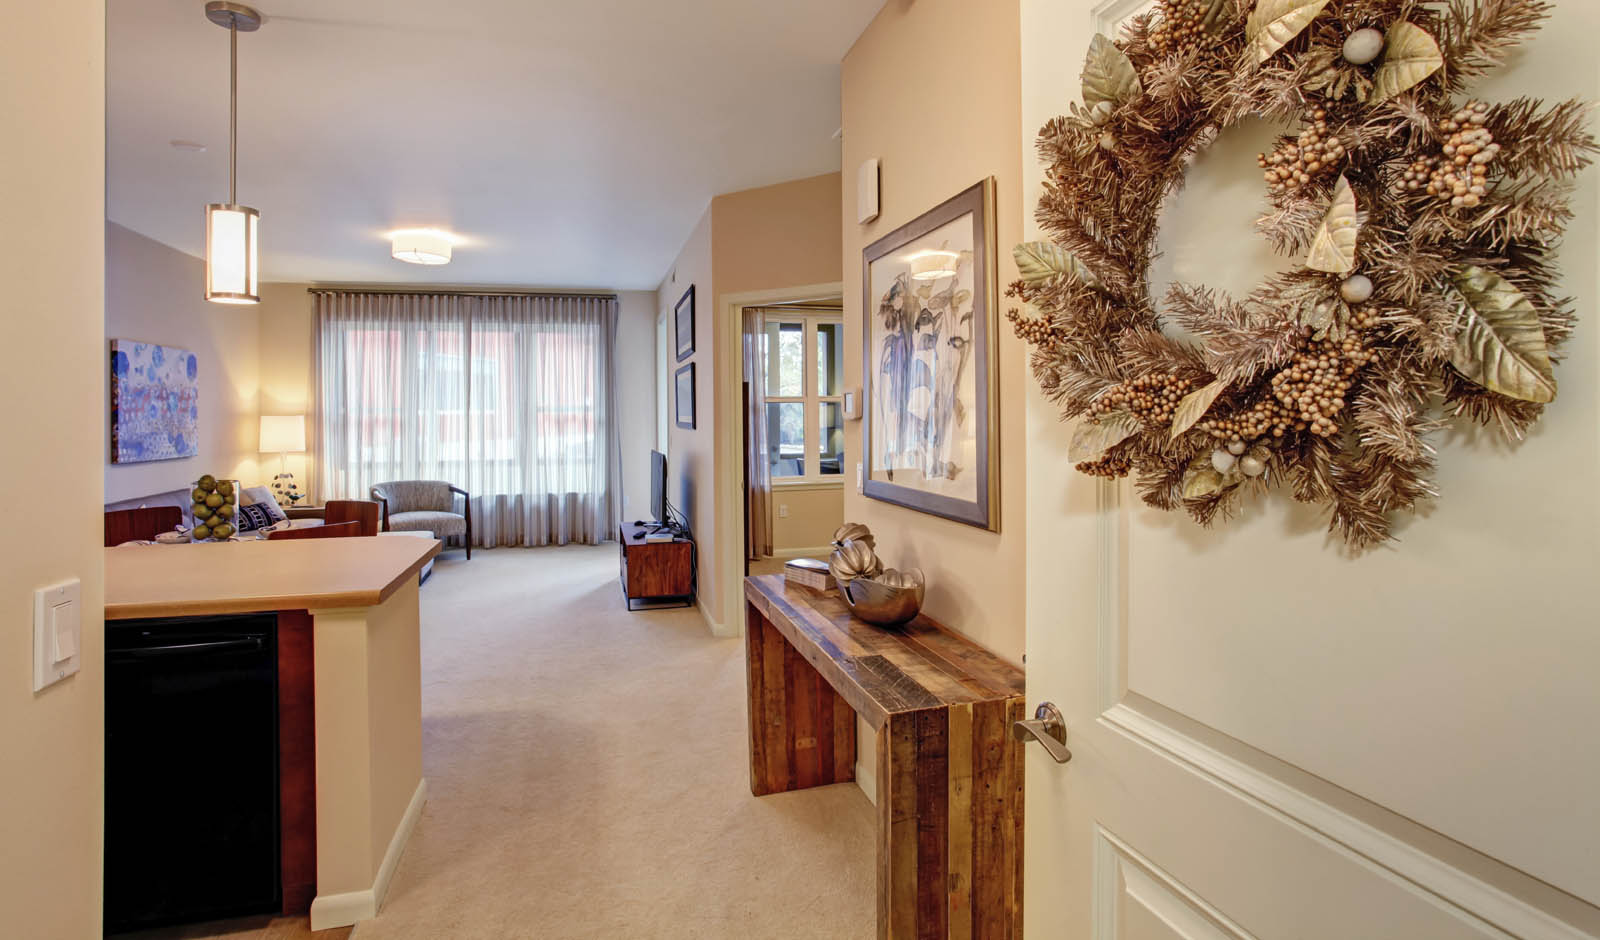 1 2 3 bedroom townhomes in aurora with a fitness center - One bedroom apartments aurora co ...